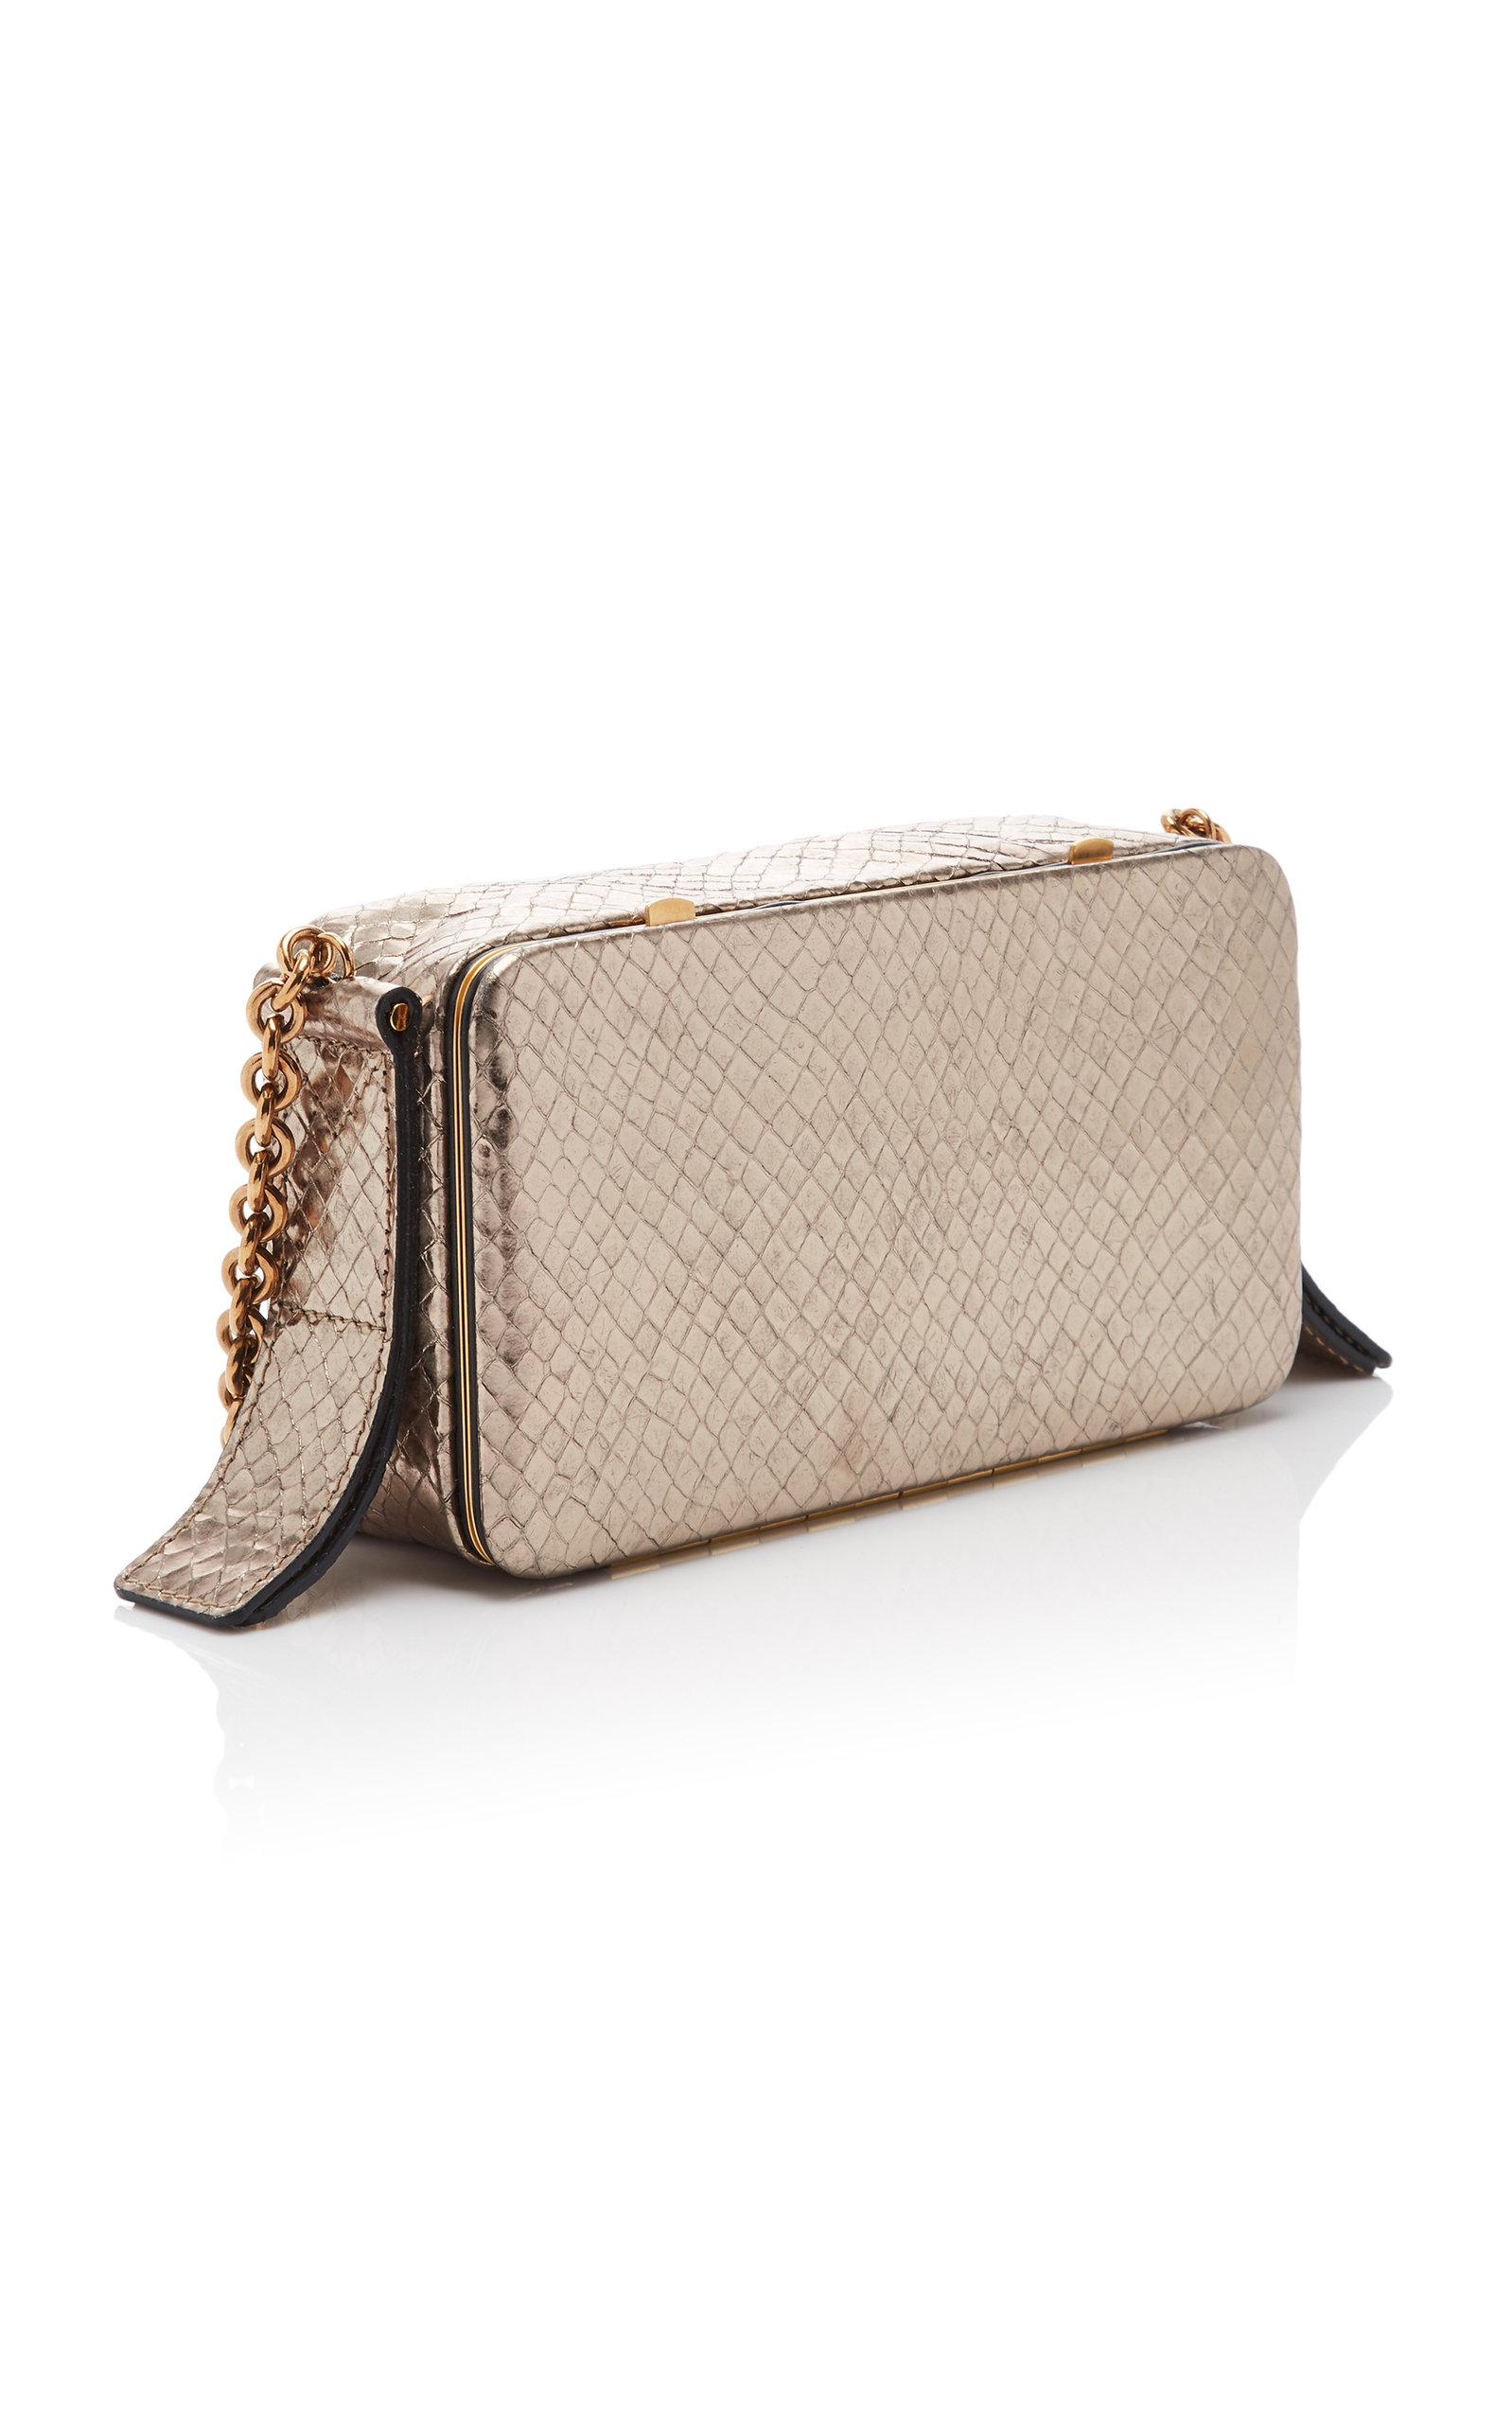 Leather Statement Clutch - Butterfly by VIDA VIDA Cheap Sale Browse WE3MG